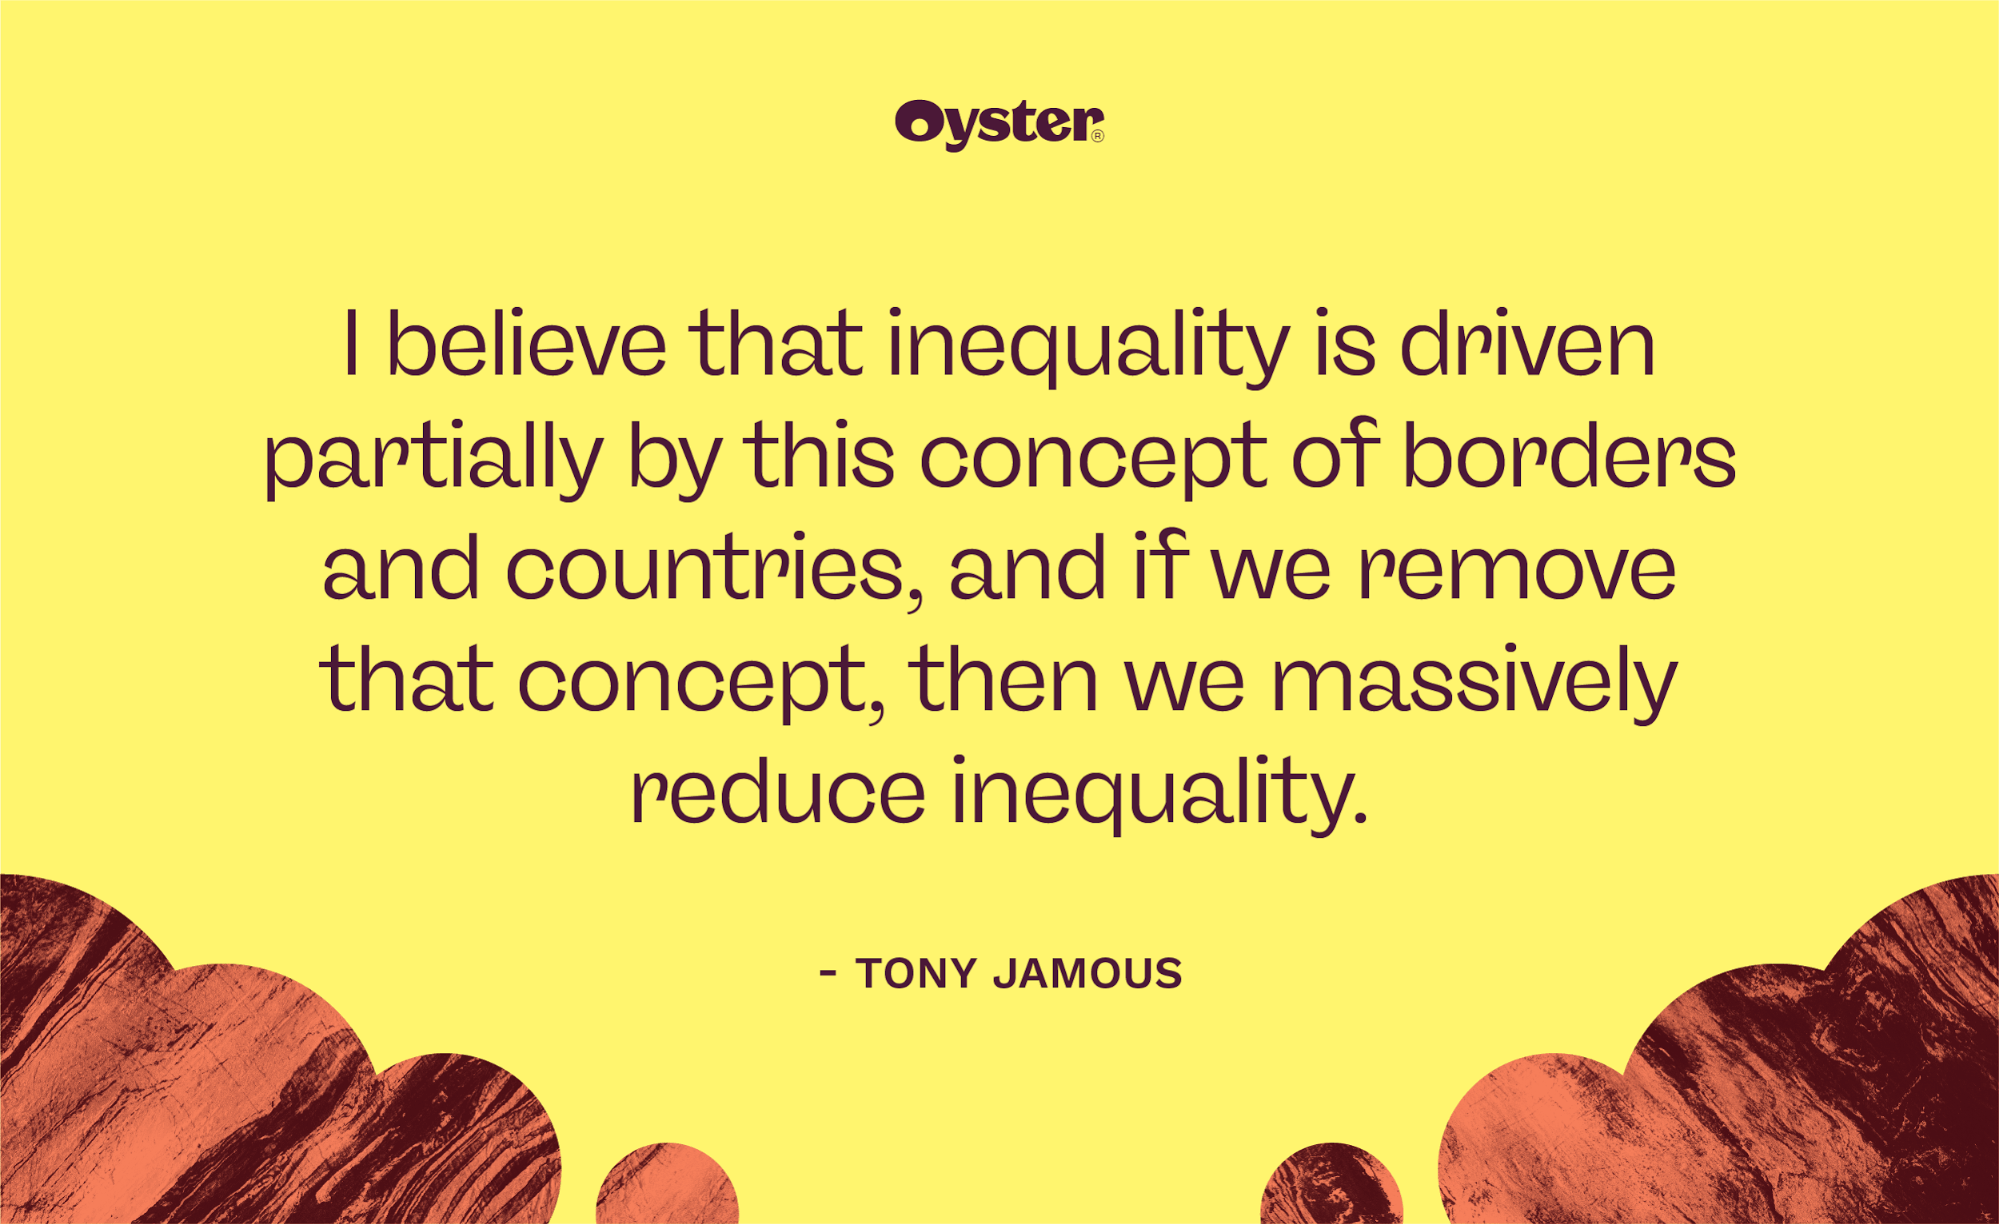 """Stylized quote graphic that says, """"I believe that inequality is driven partially by this concept of borders and countries, and if we remove that concept, then we massively reduce inequality."""""""